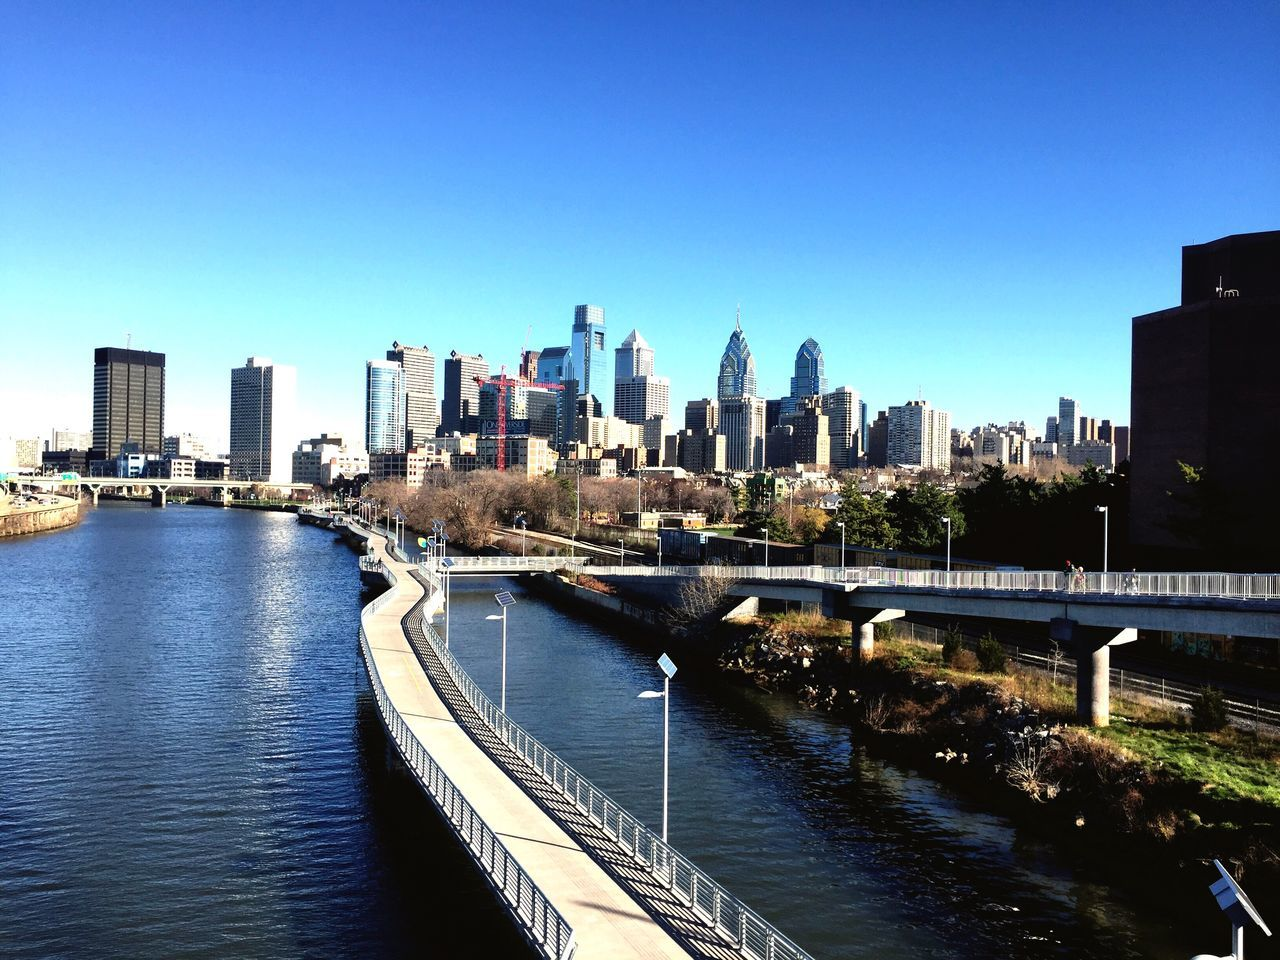 Schuylkill River In City Against Clear Sky